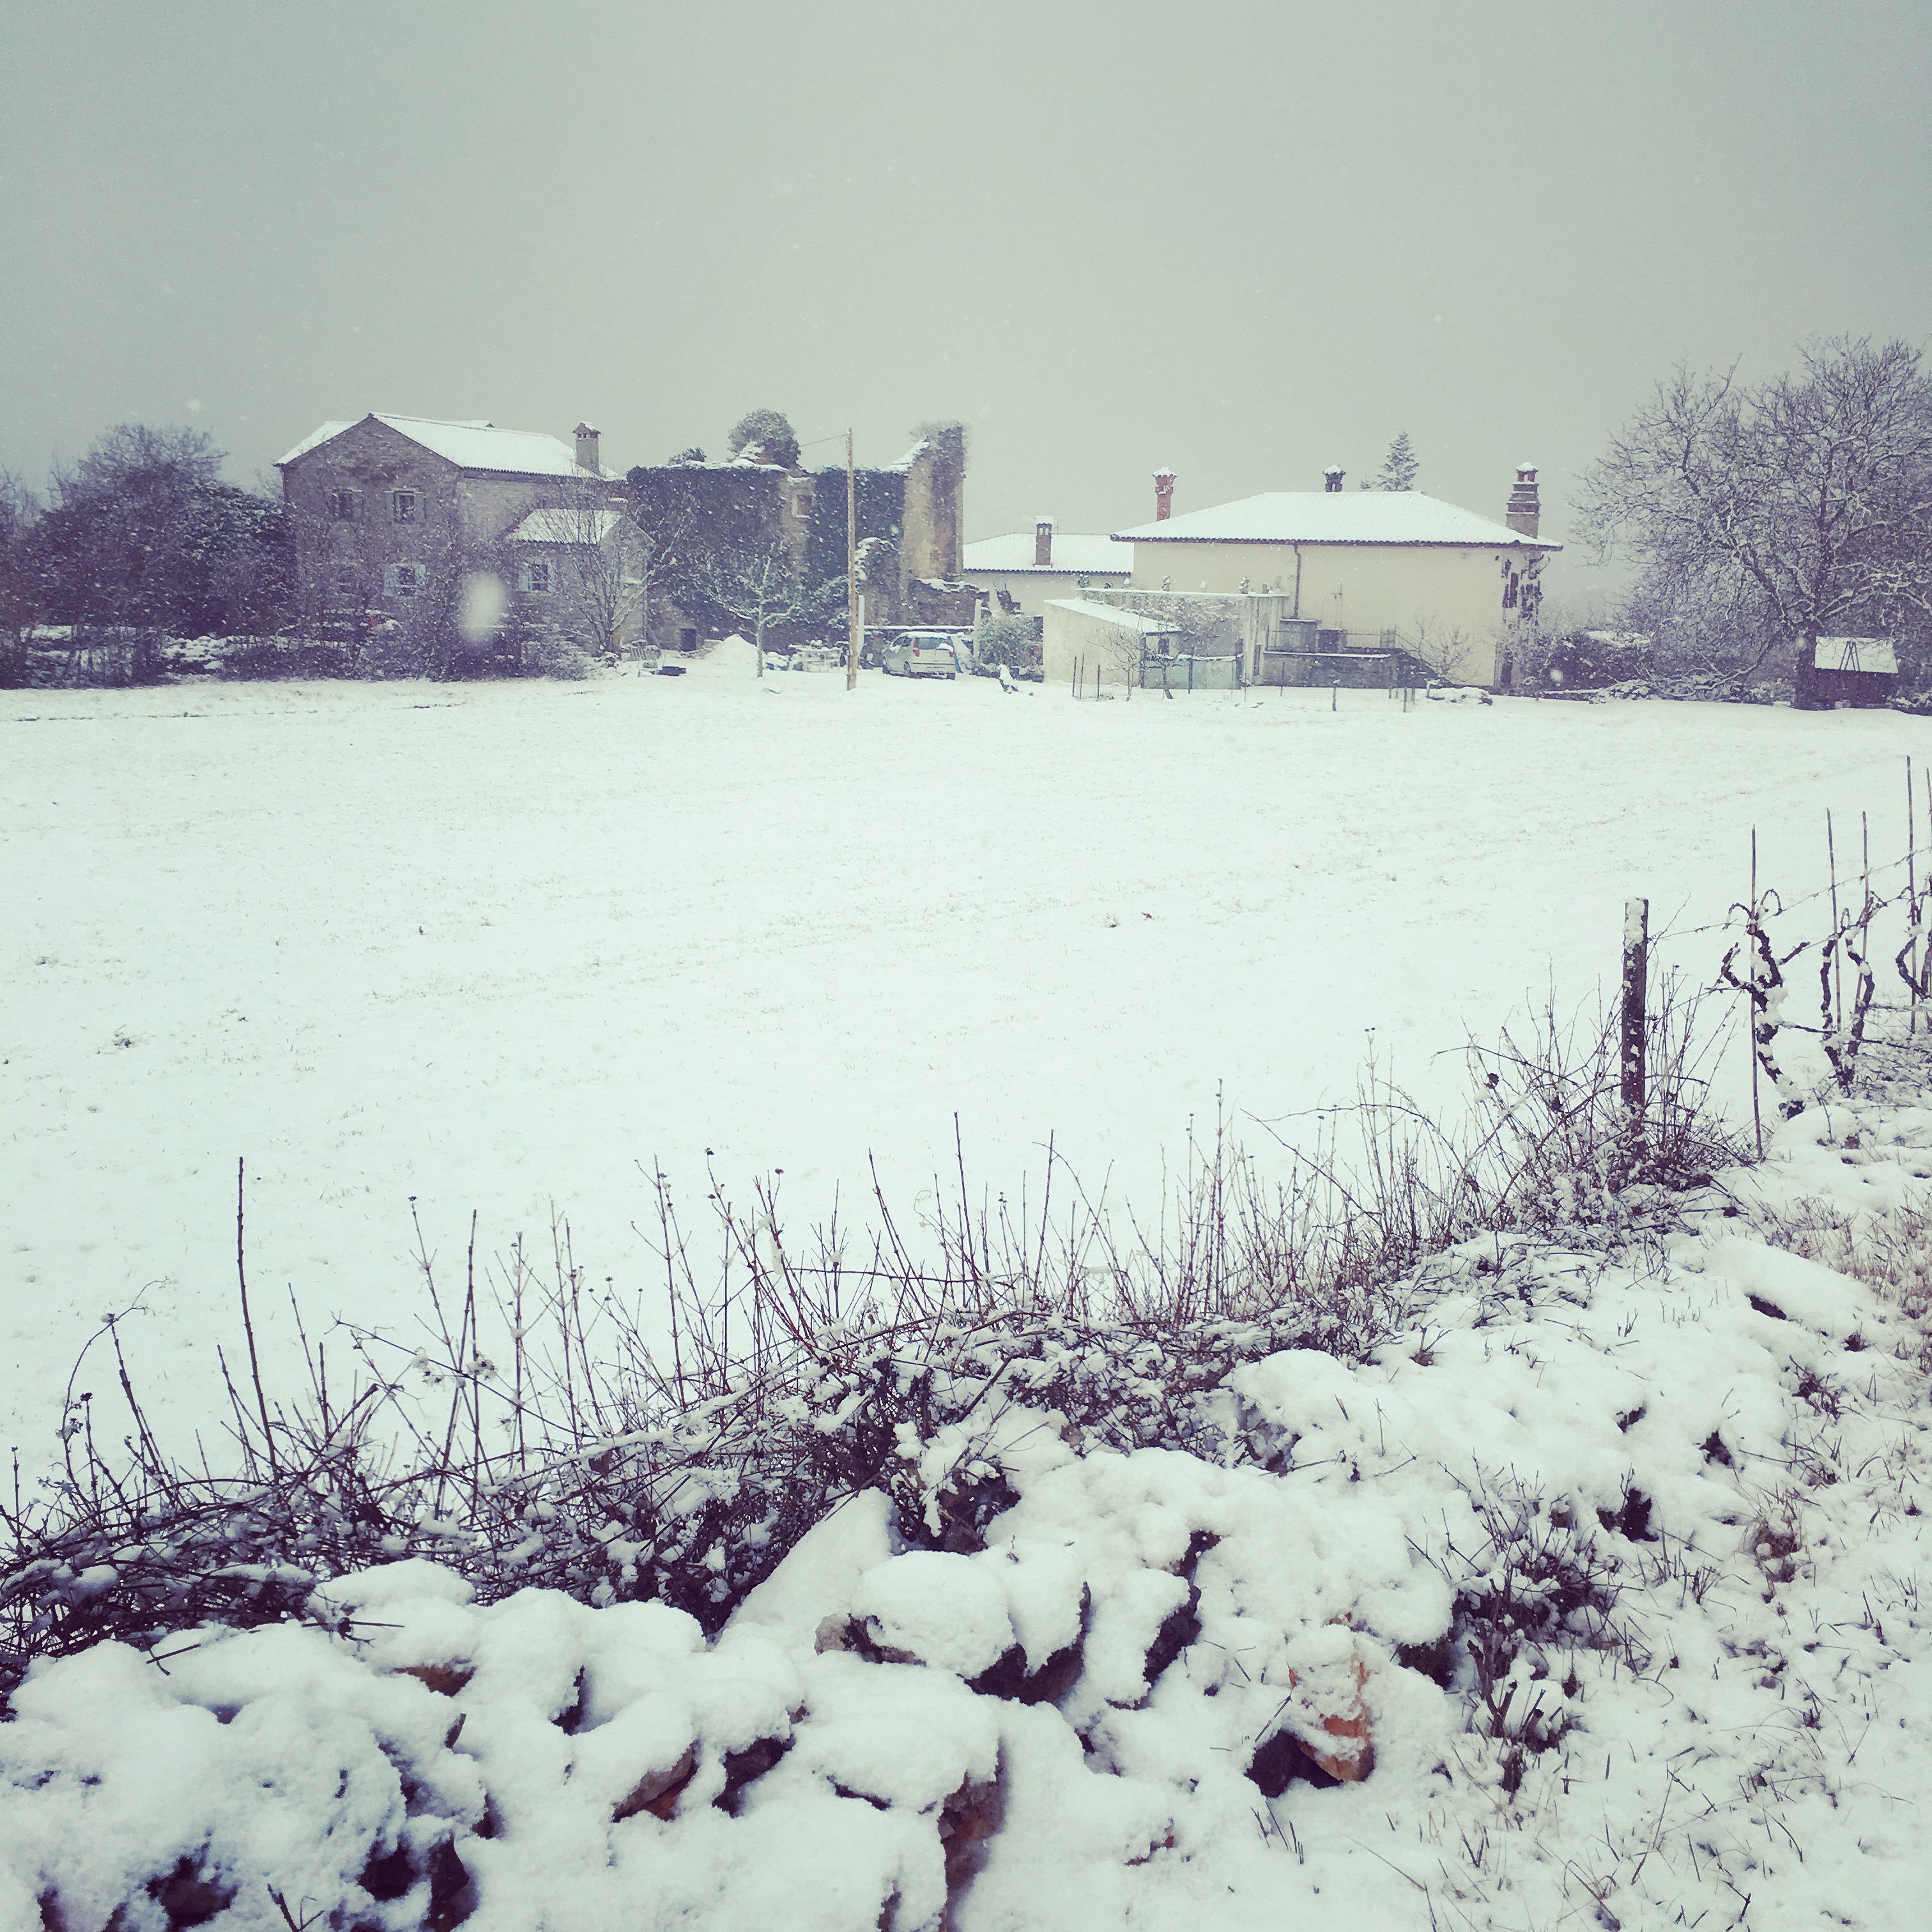 Our house, on the left, with a snowy roof...